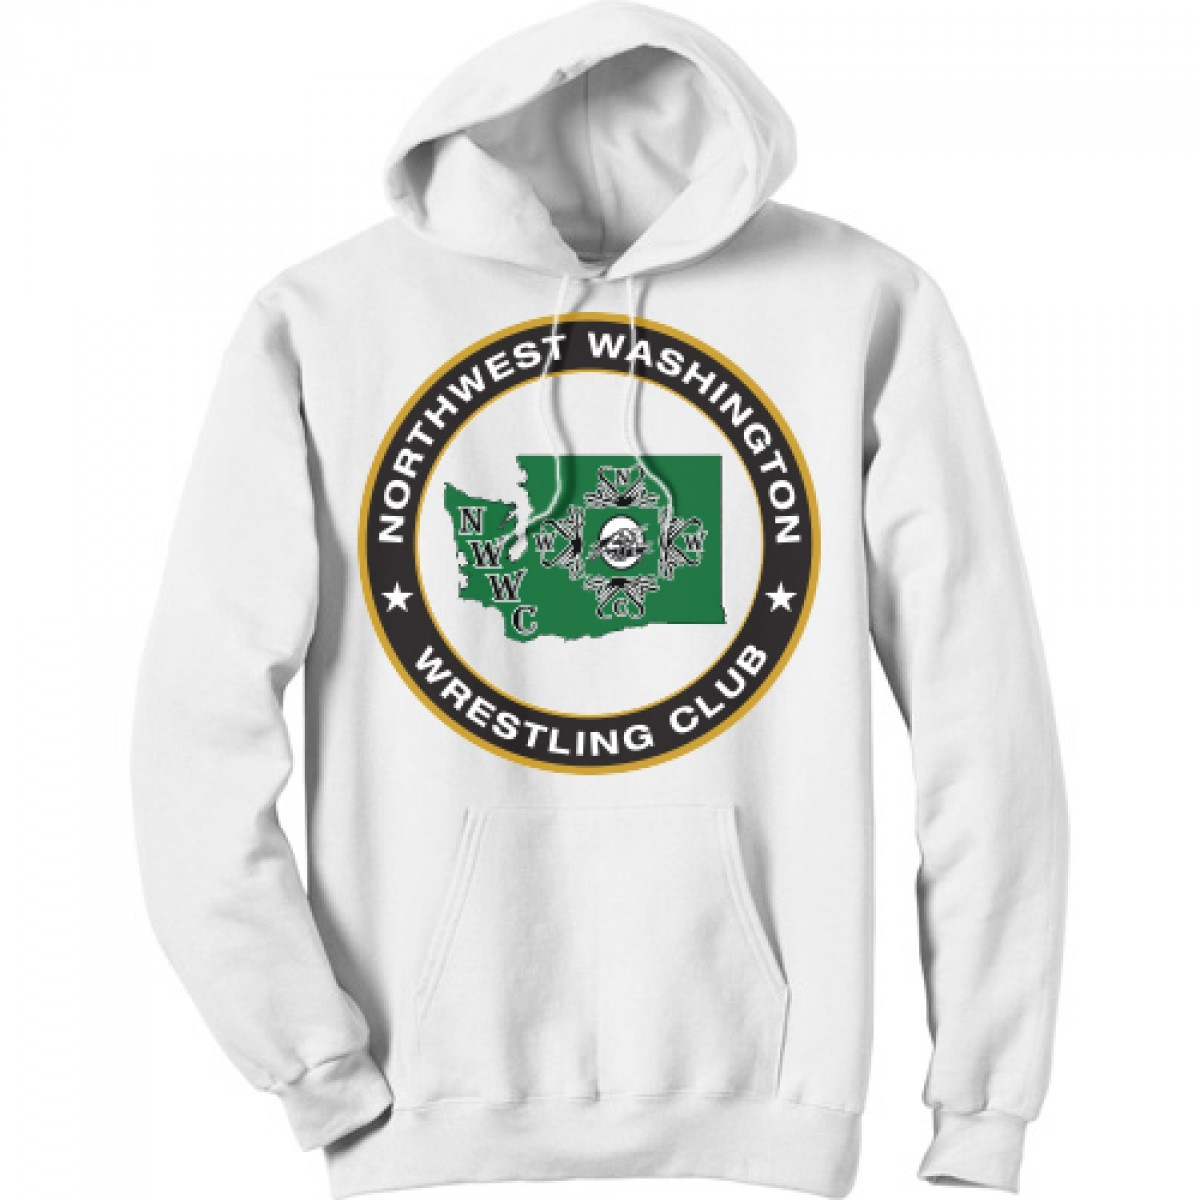 NWWC White Hoodie With Green Logo-White-2XL